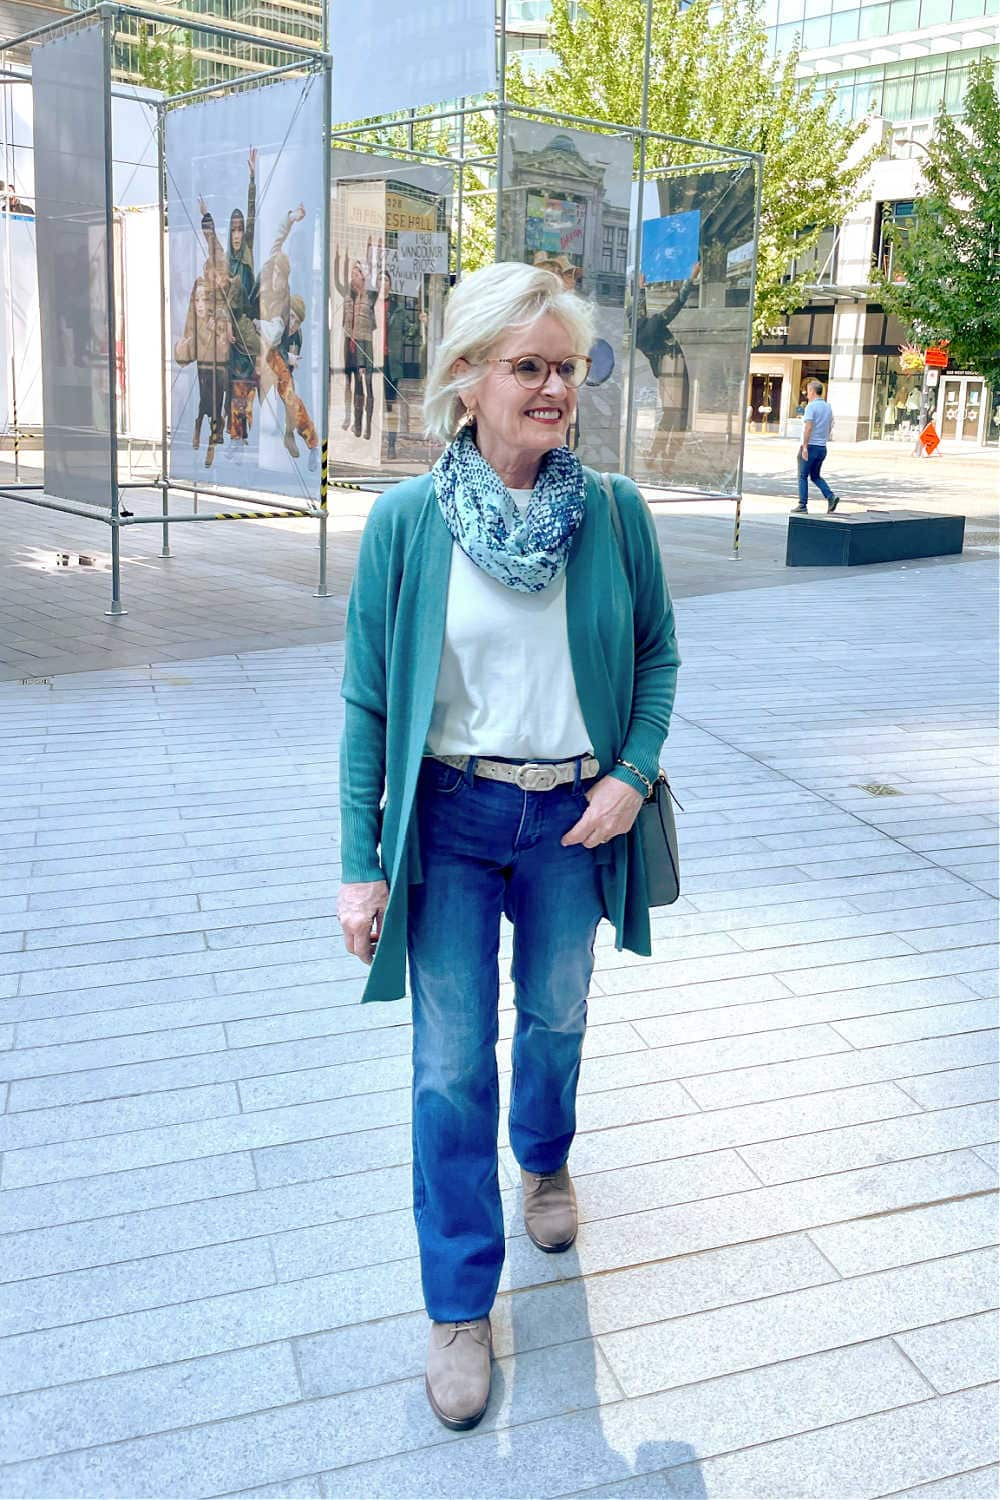 over 50 blogger jennifer connolly wearing nydj and teal cardigan while walking down the sidewalk